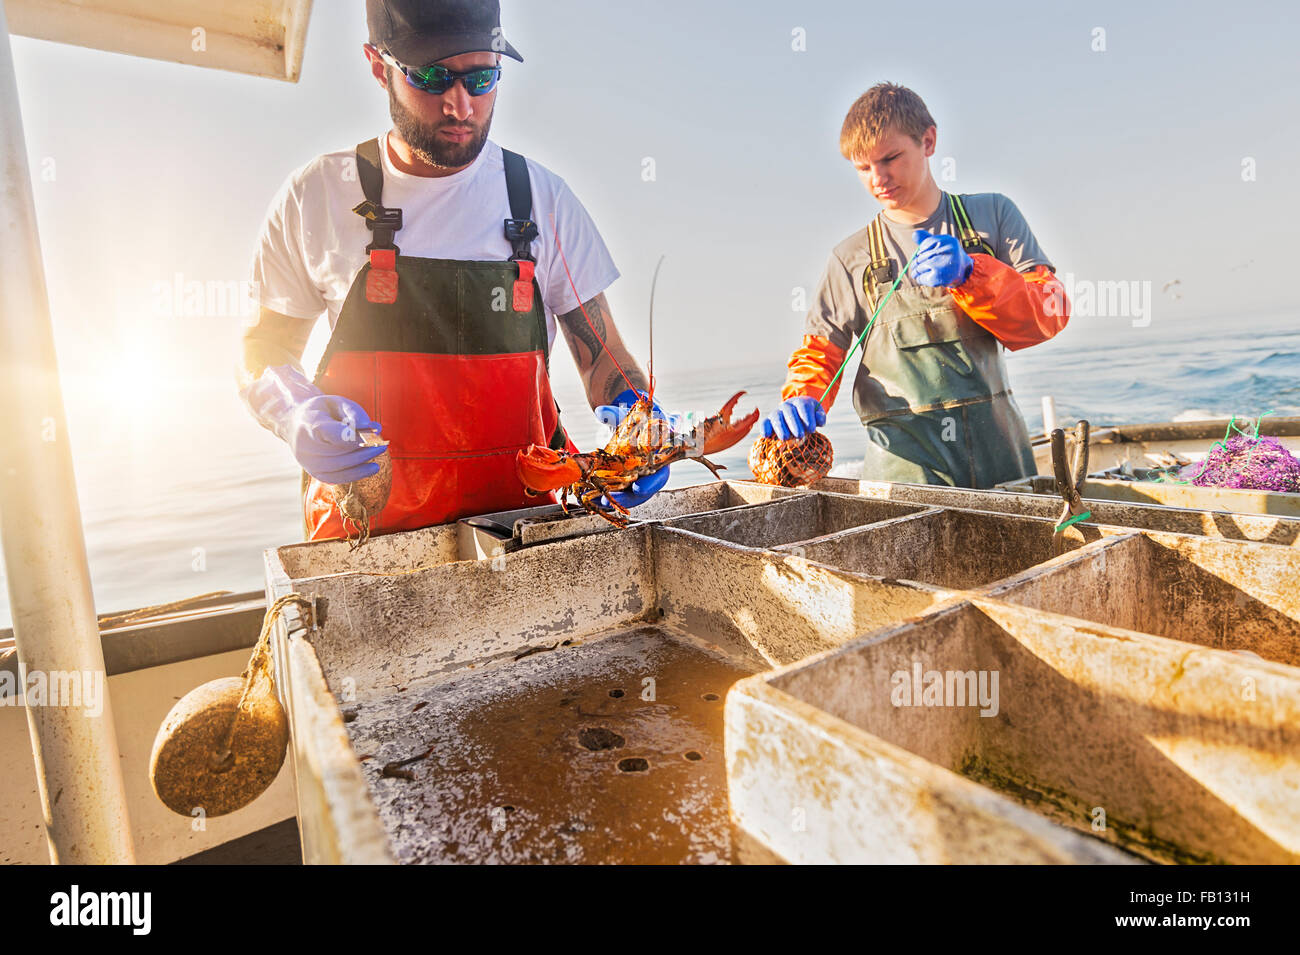 Fishermen measuring lobster - Stock Image